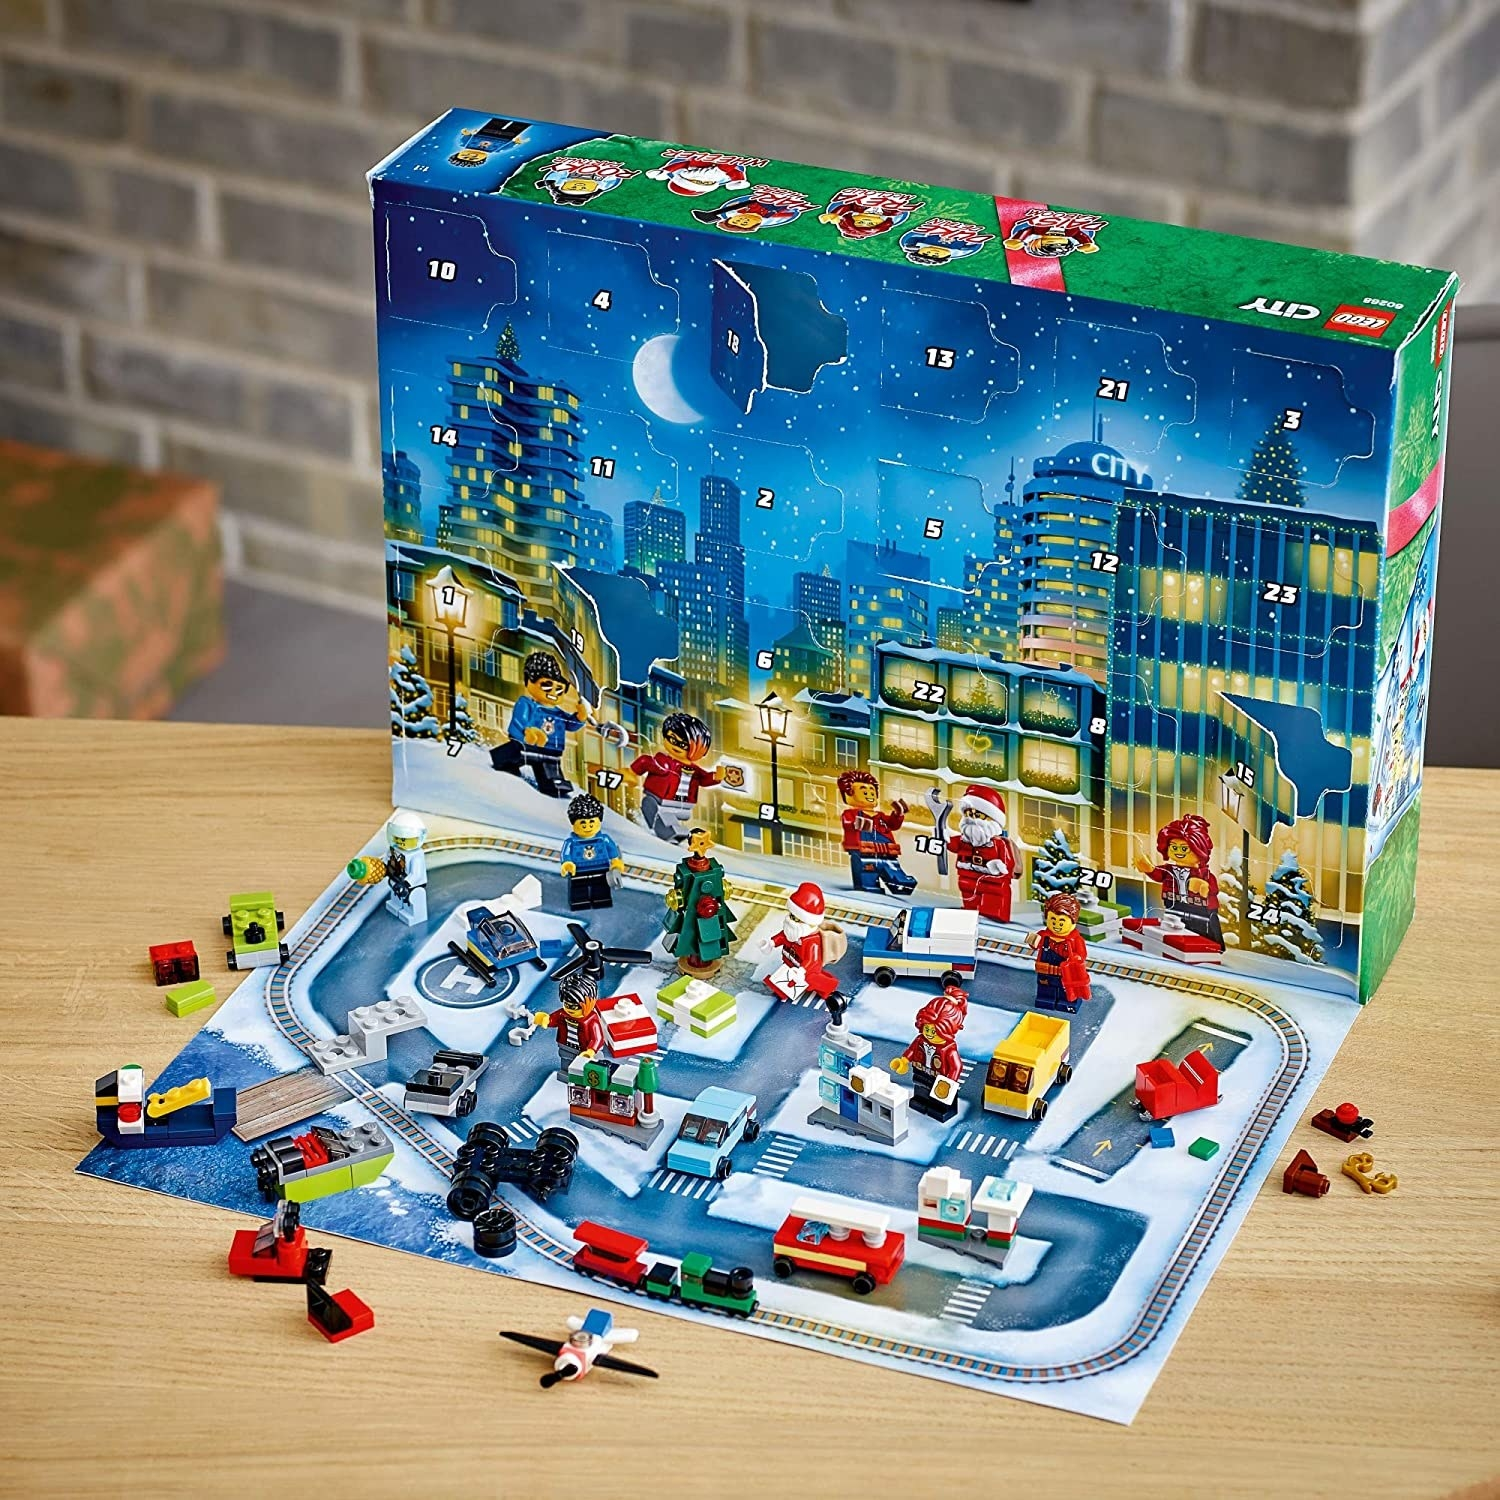 the cardboard cut out advent calendar deigned to look like a cityscape